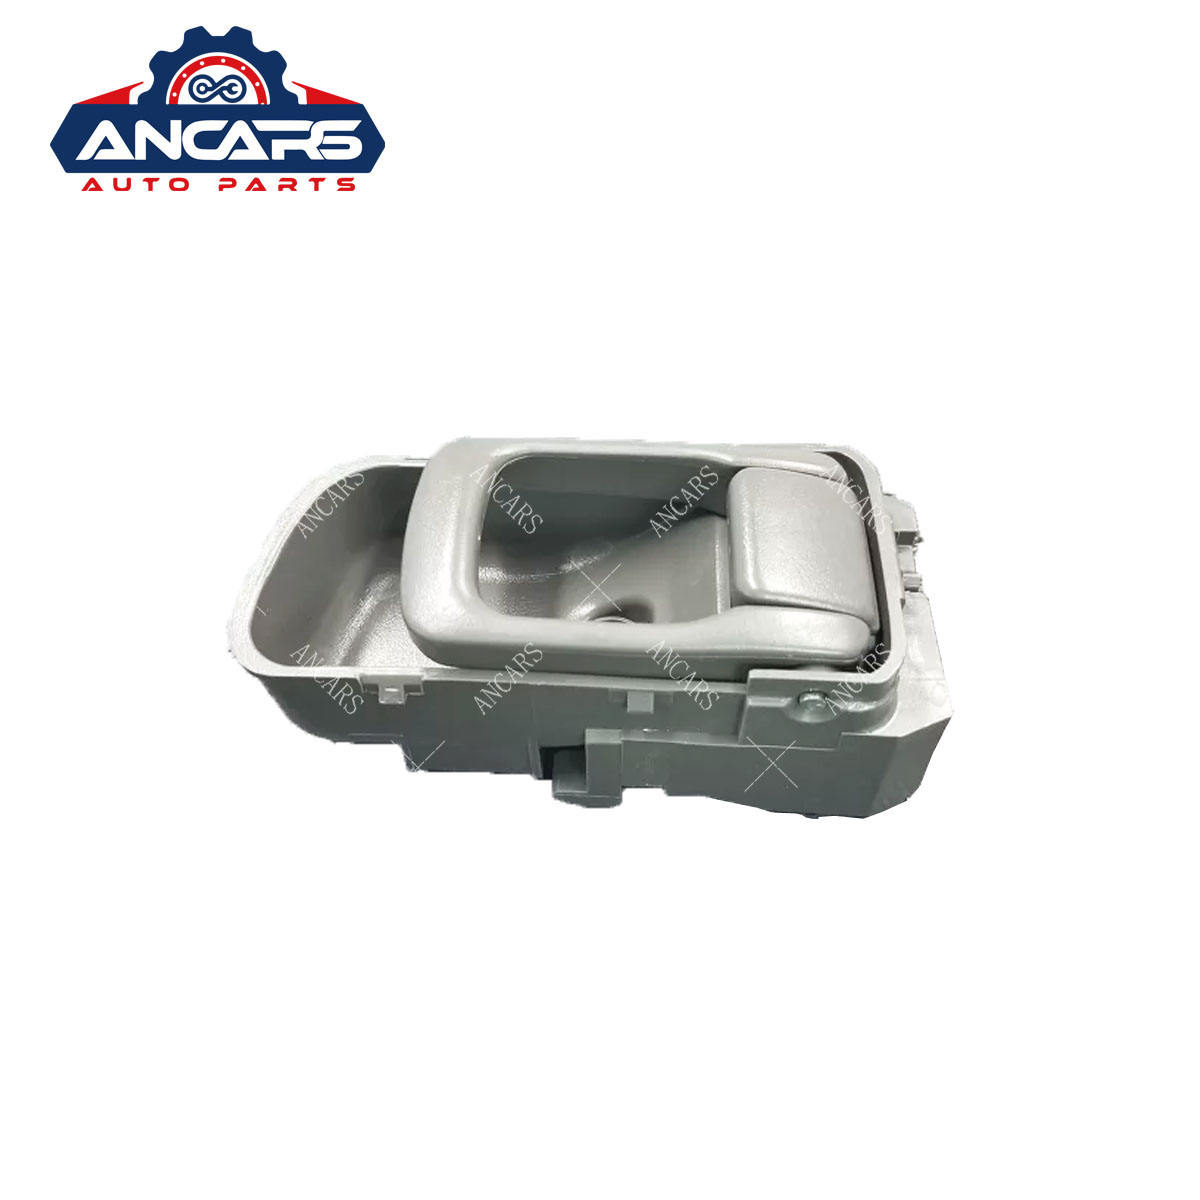 Auto Parts Car Inside Door Handle 80670-VW010 80671-VW010 For Ni-ssan Caravan Urvan E25